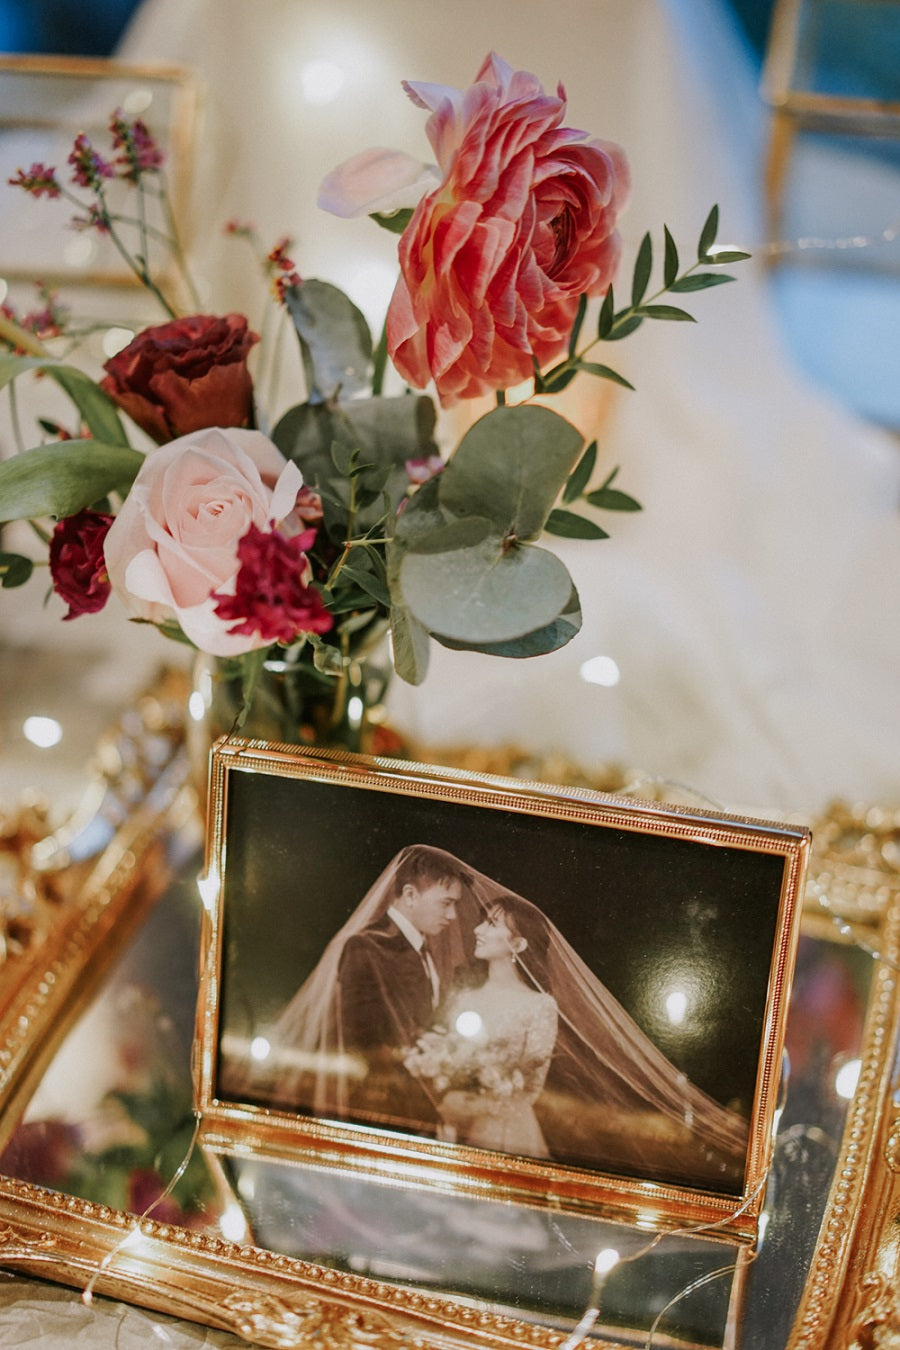 Eucalyptus with blush rose arranged on mirror prop for bespoke wedding photo table styling